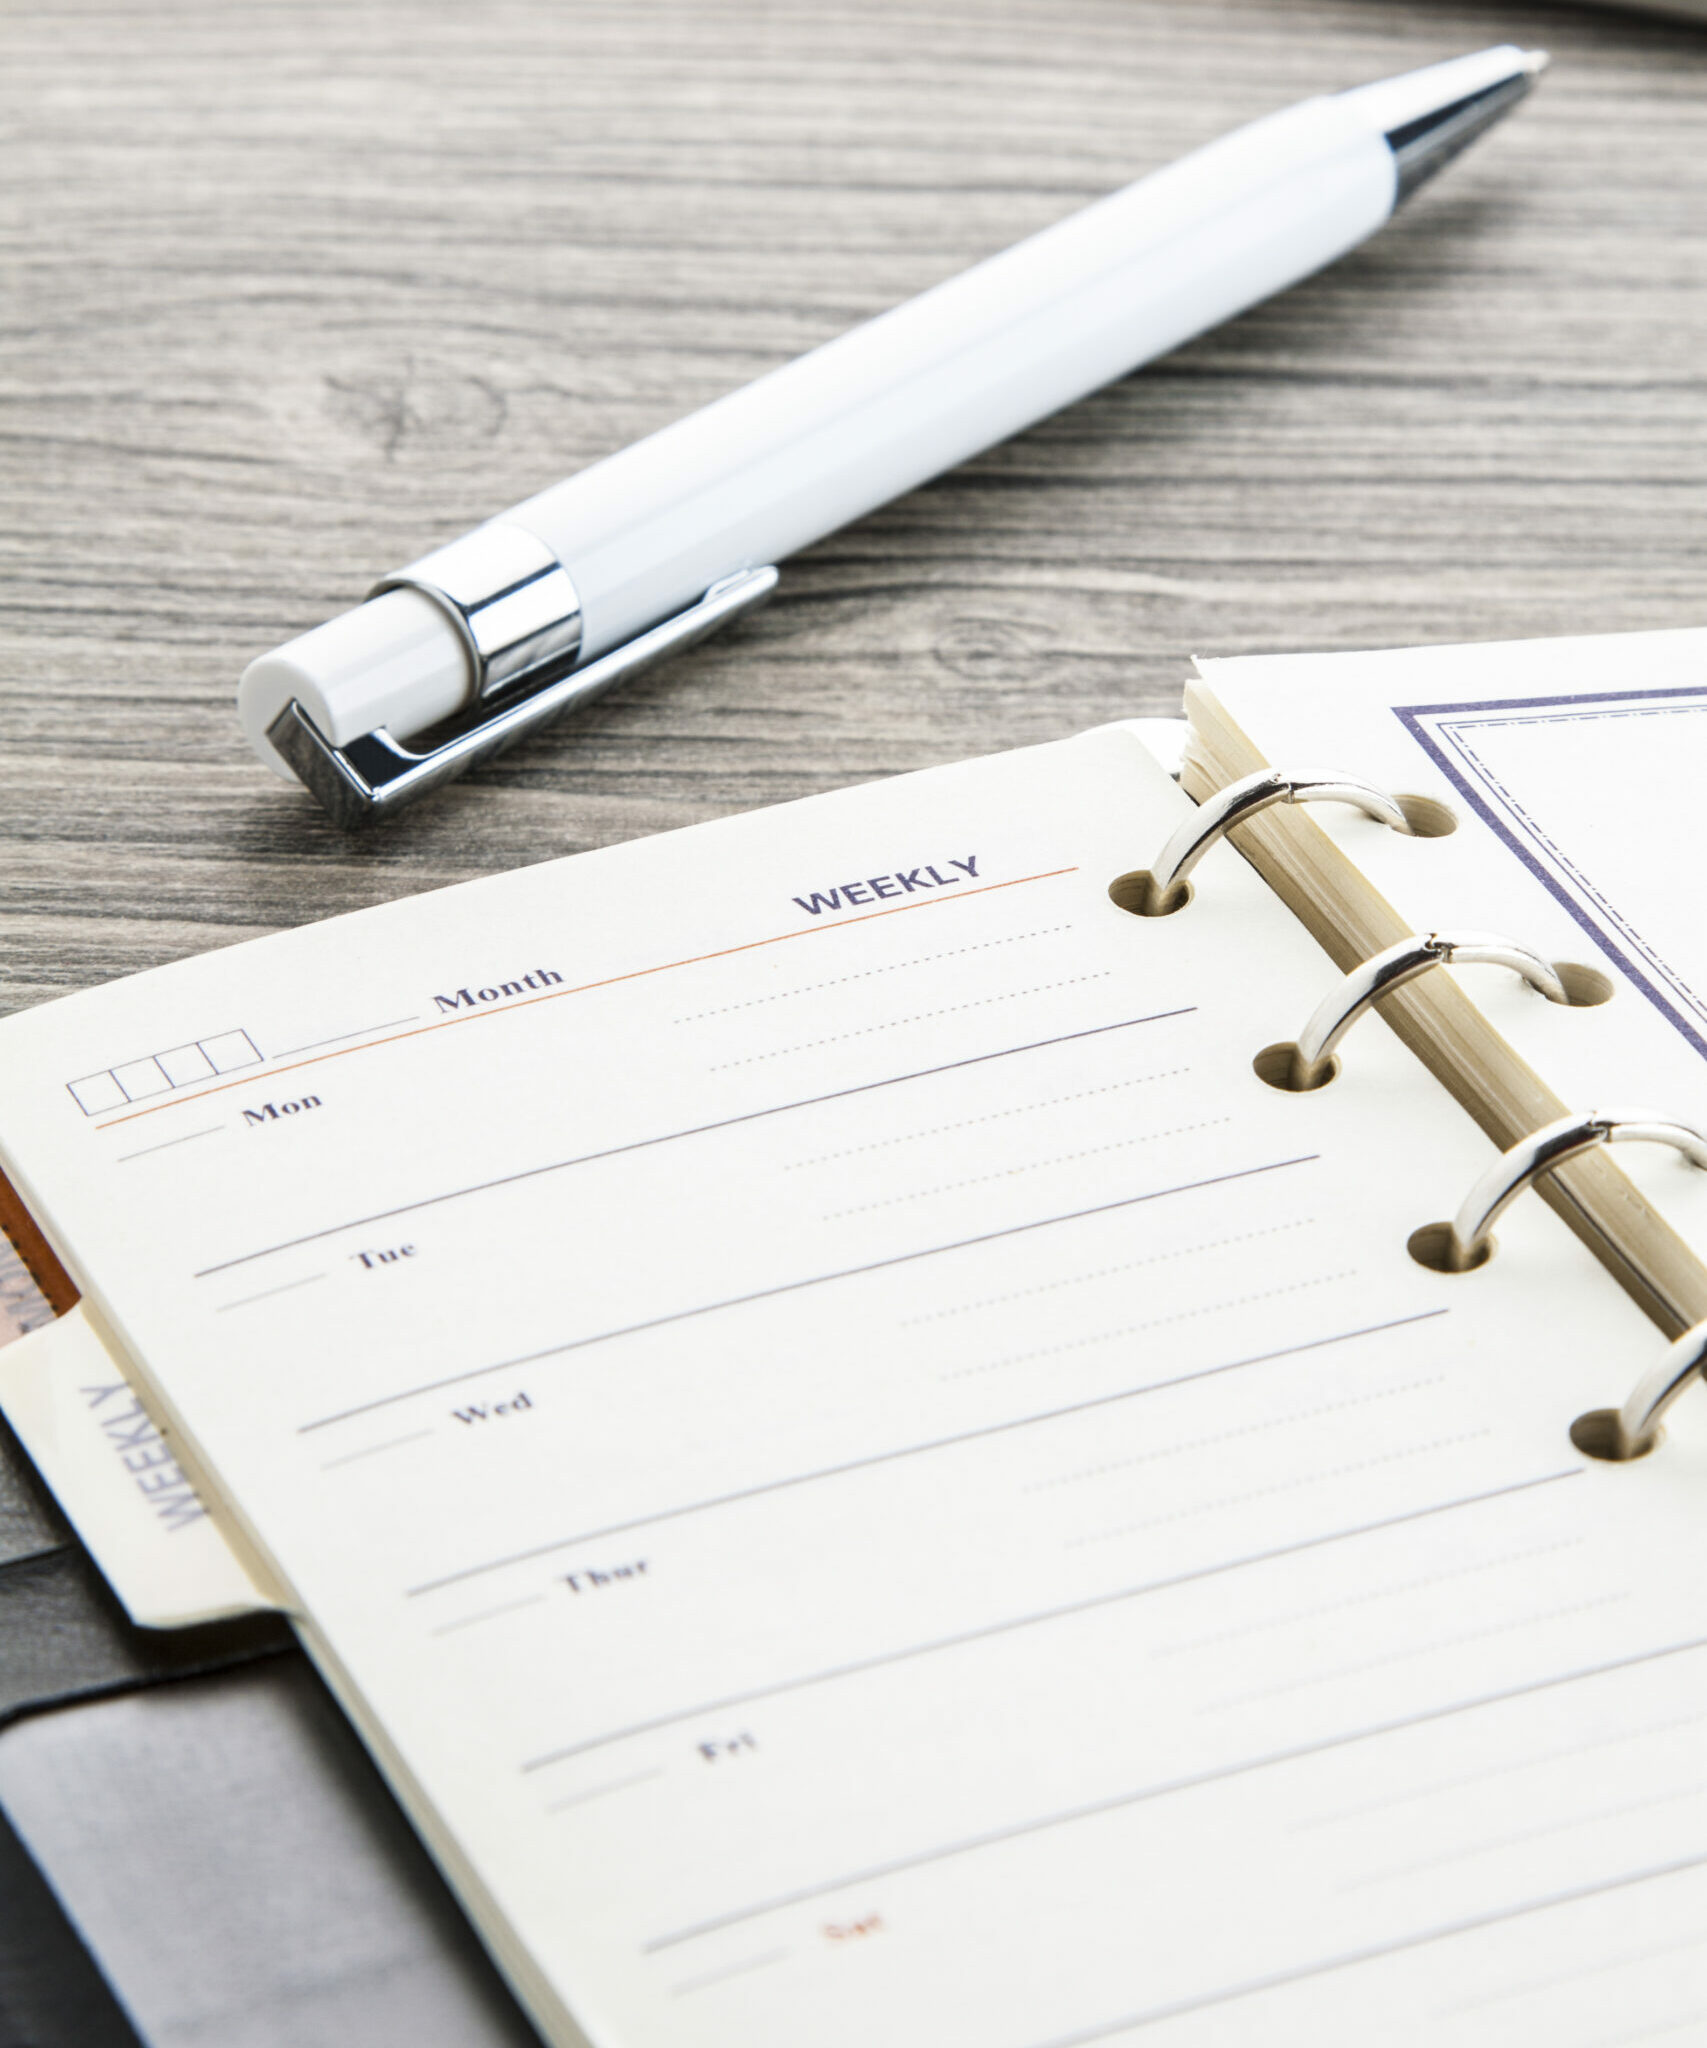 White ballpoint pen and leather weekly calendar on brown wooden table.